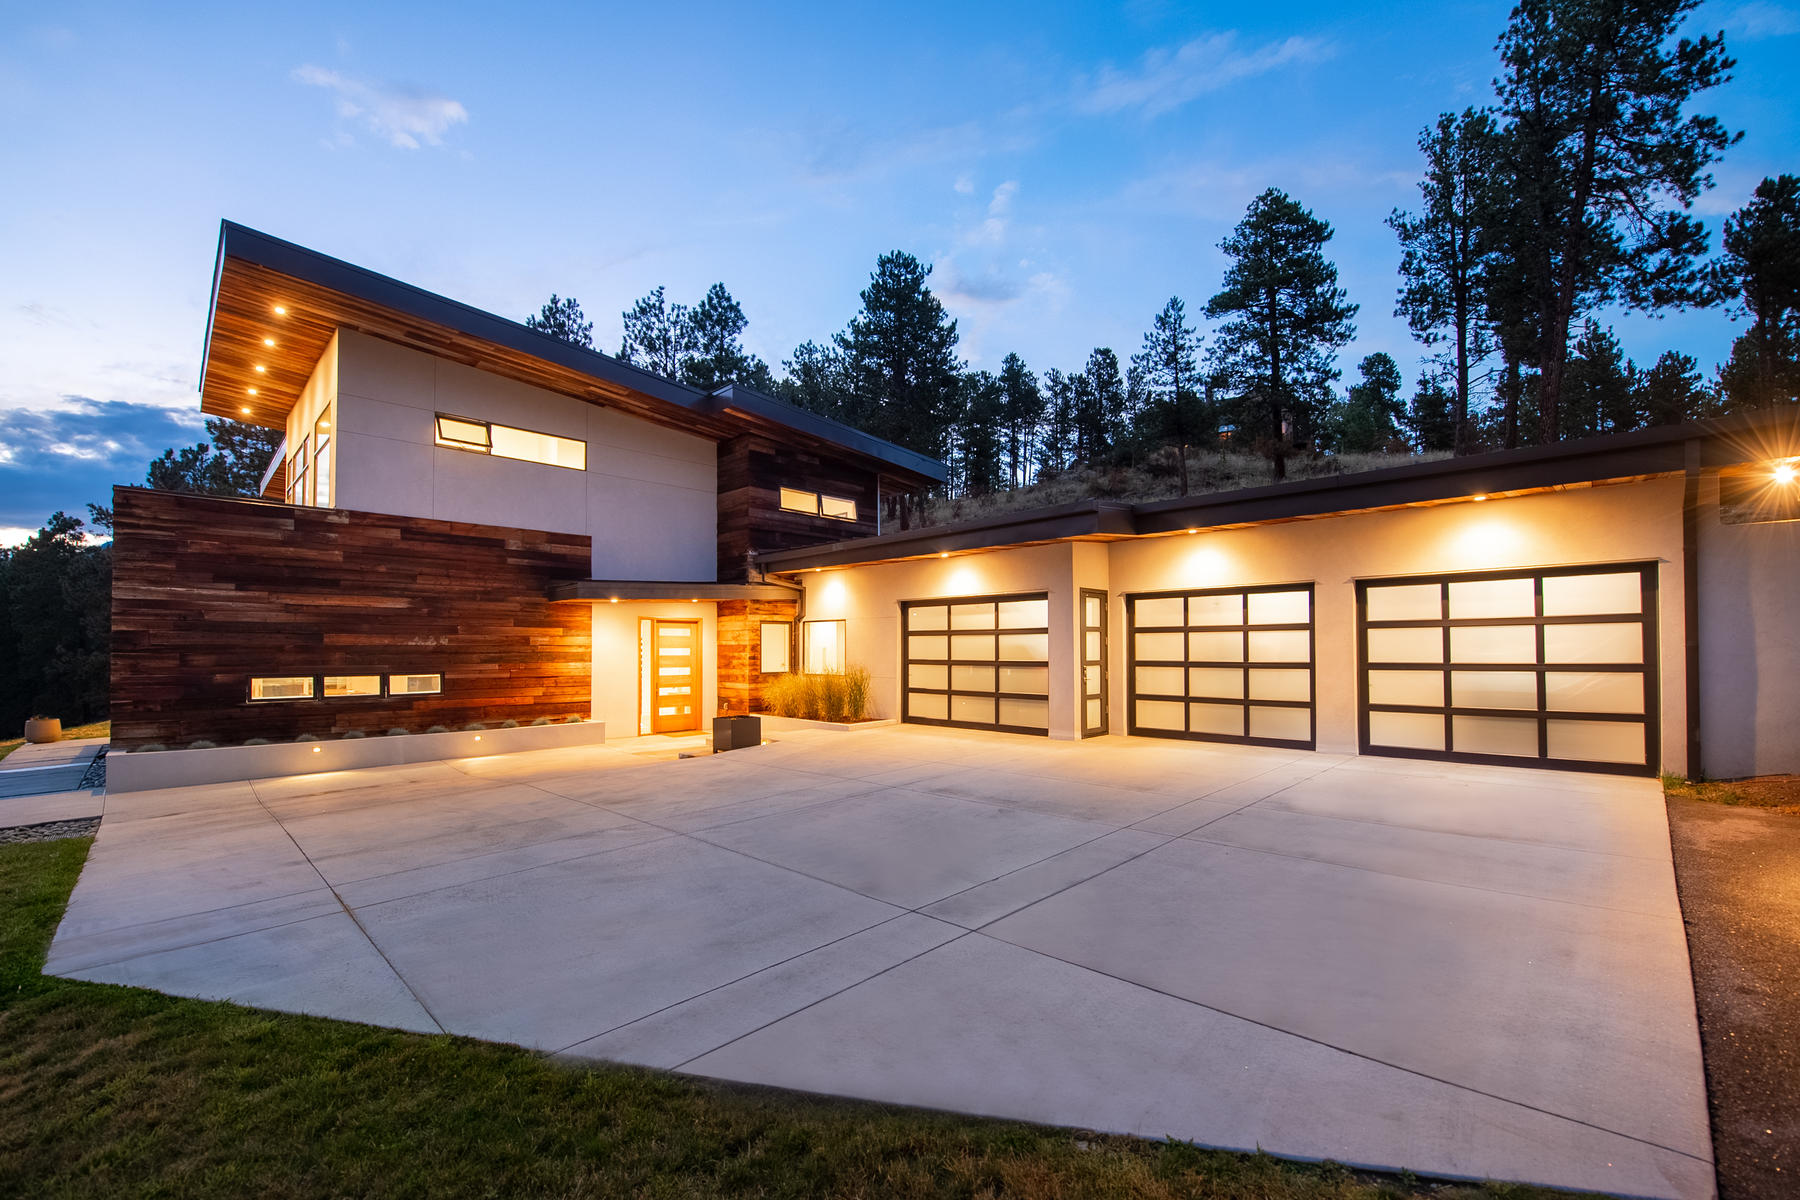 Single Family Home for Active at Architecturally Distinctive, Yet Utterly Functional 3551 Overlook Trail Evergreen, Colorado 80439 United States